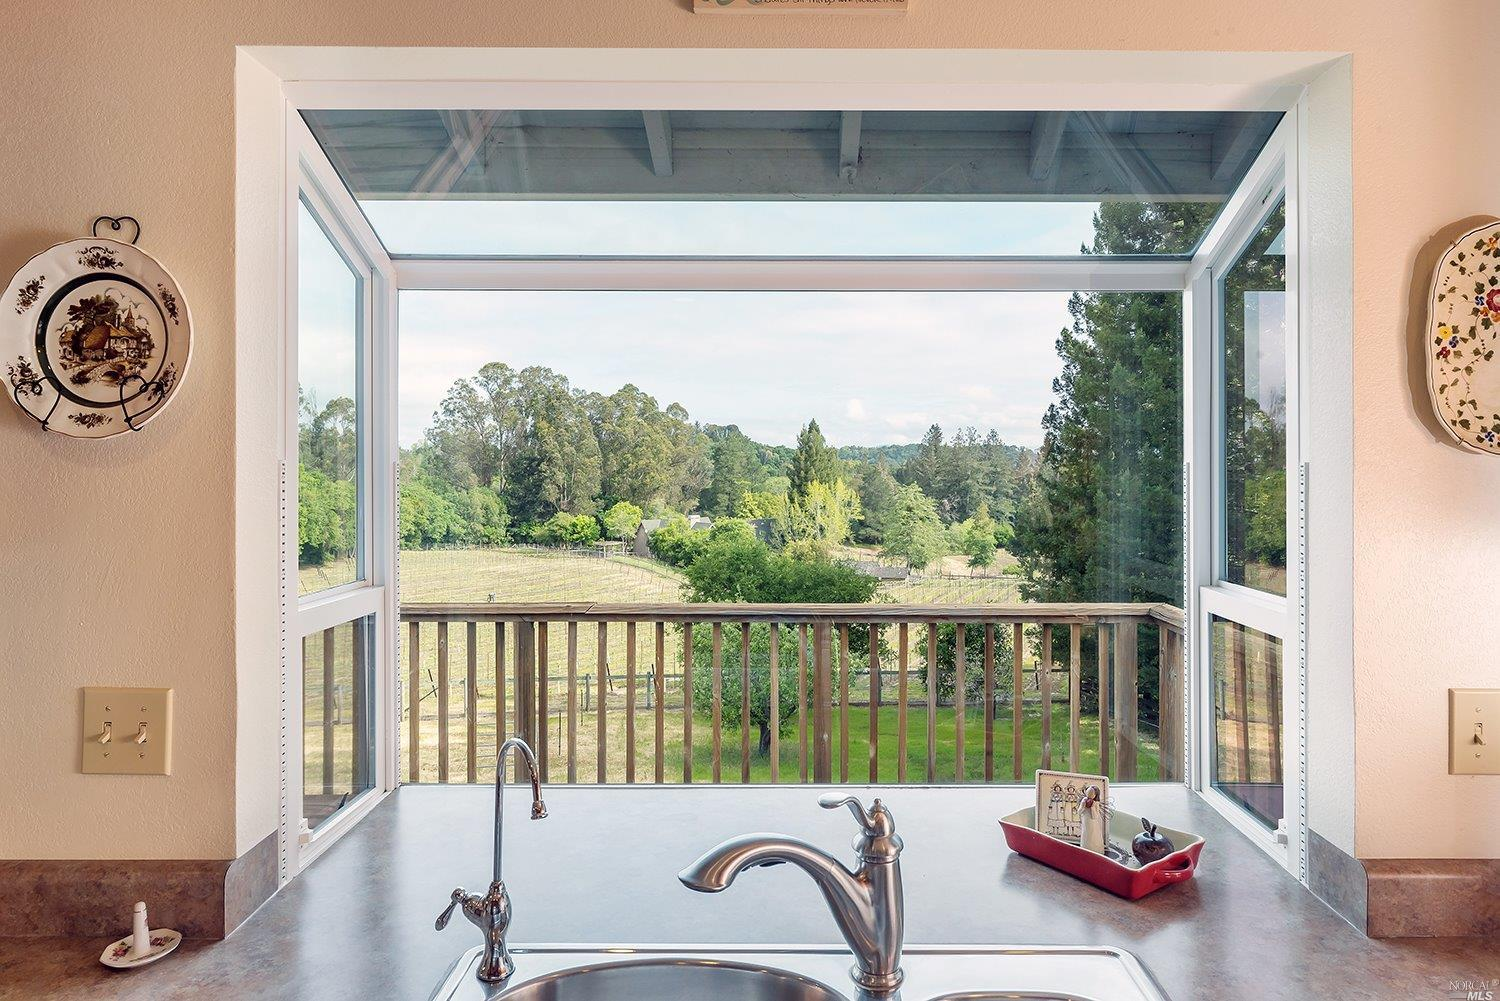 Additional photo for property listing at 6096 Vine Hill School Road  SEBASTOPOL, CALIFORNIA 95472